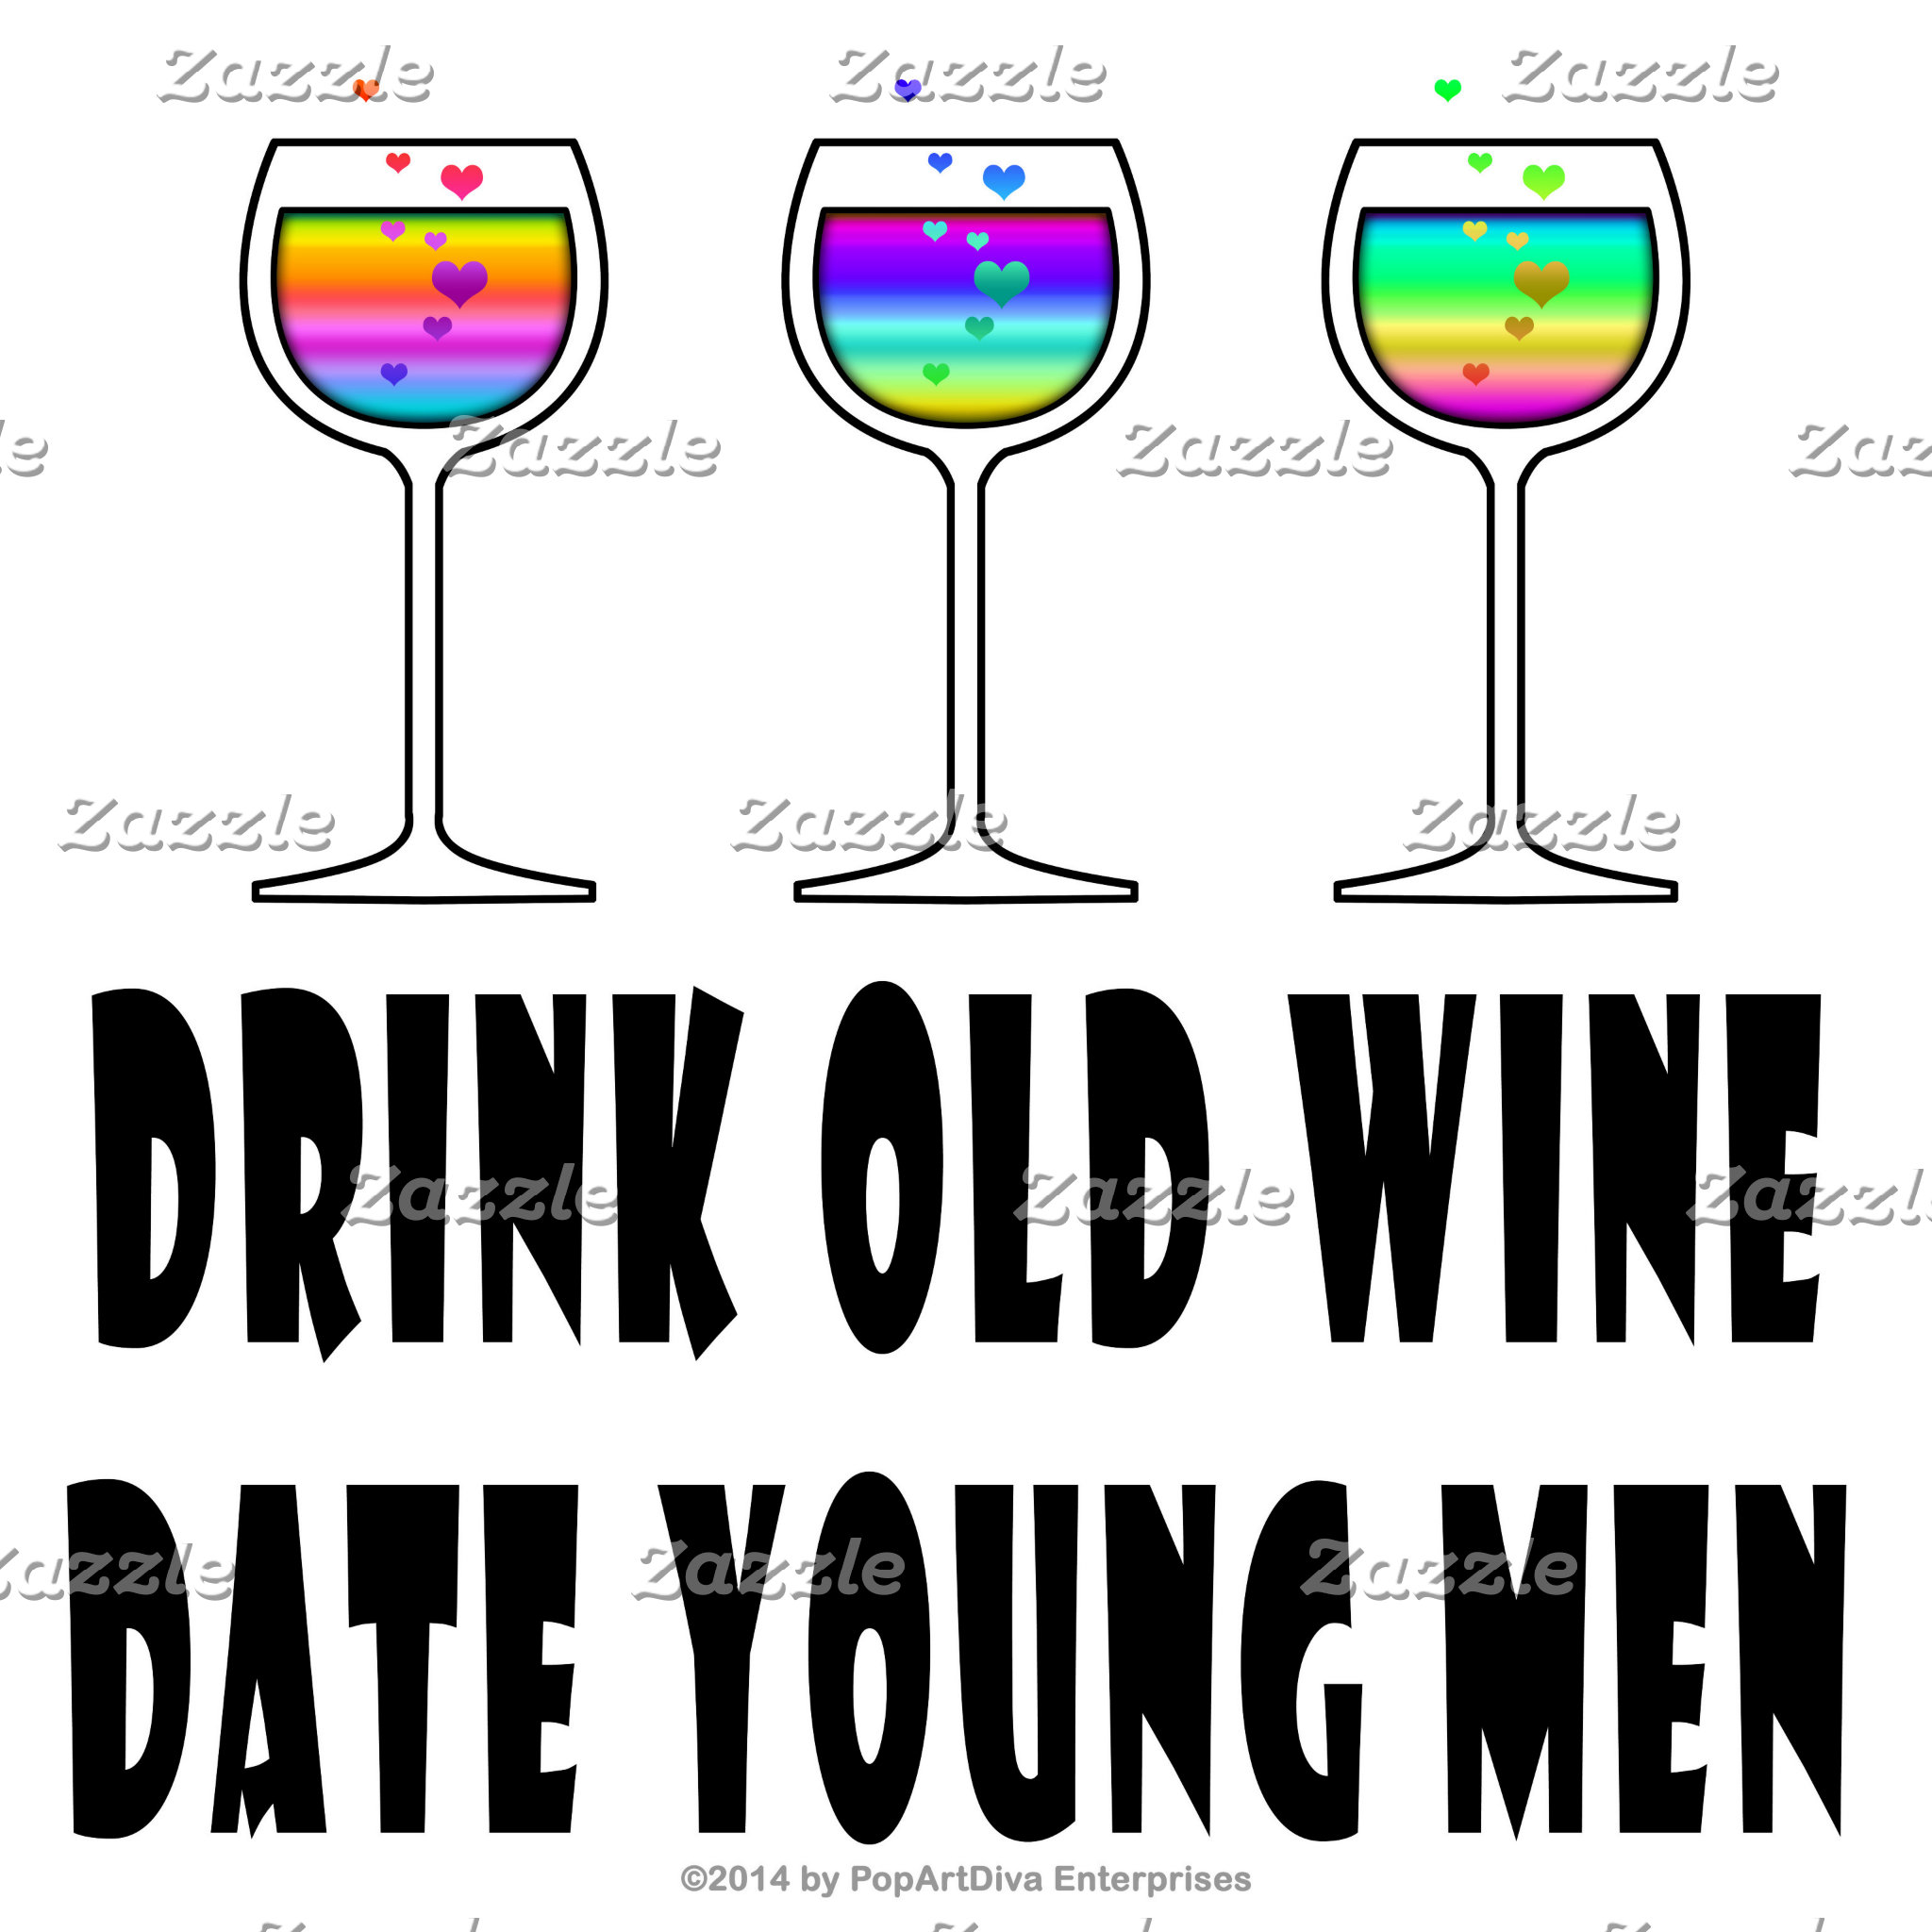 aq3 DRINK OLD WINE, DATE YOUNG MEN